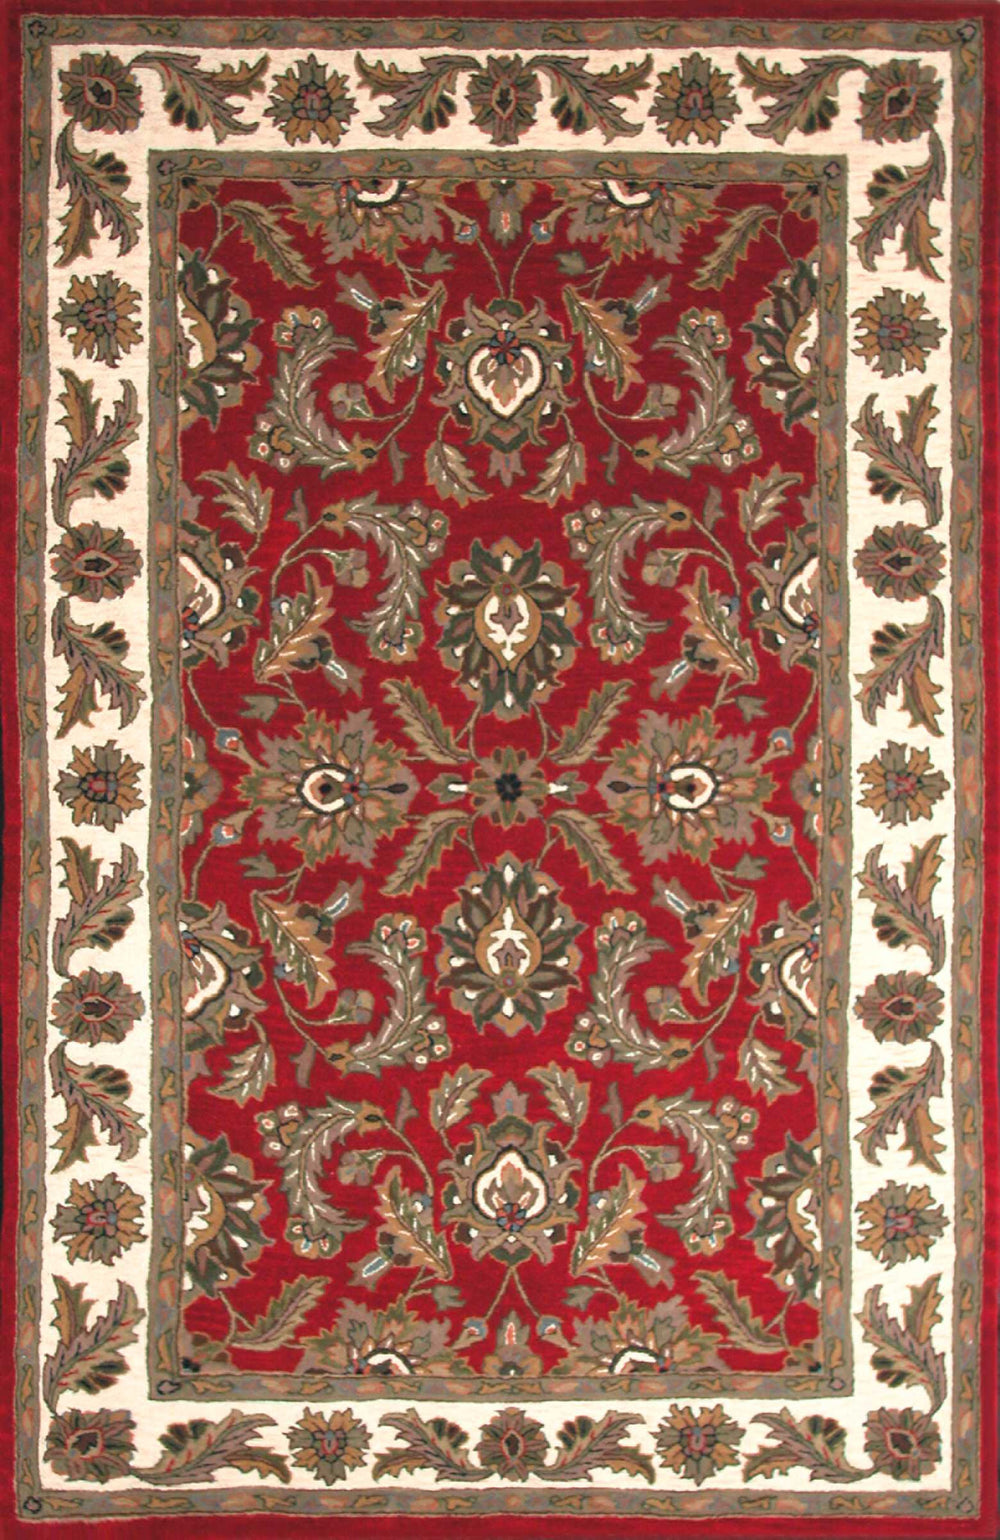 Dalyn Jewel JW10 Area Rug